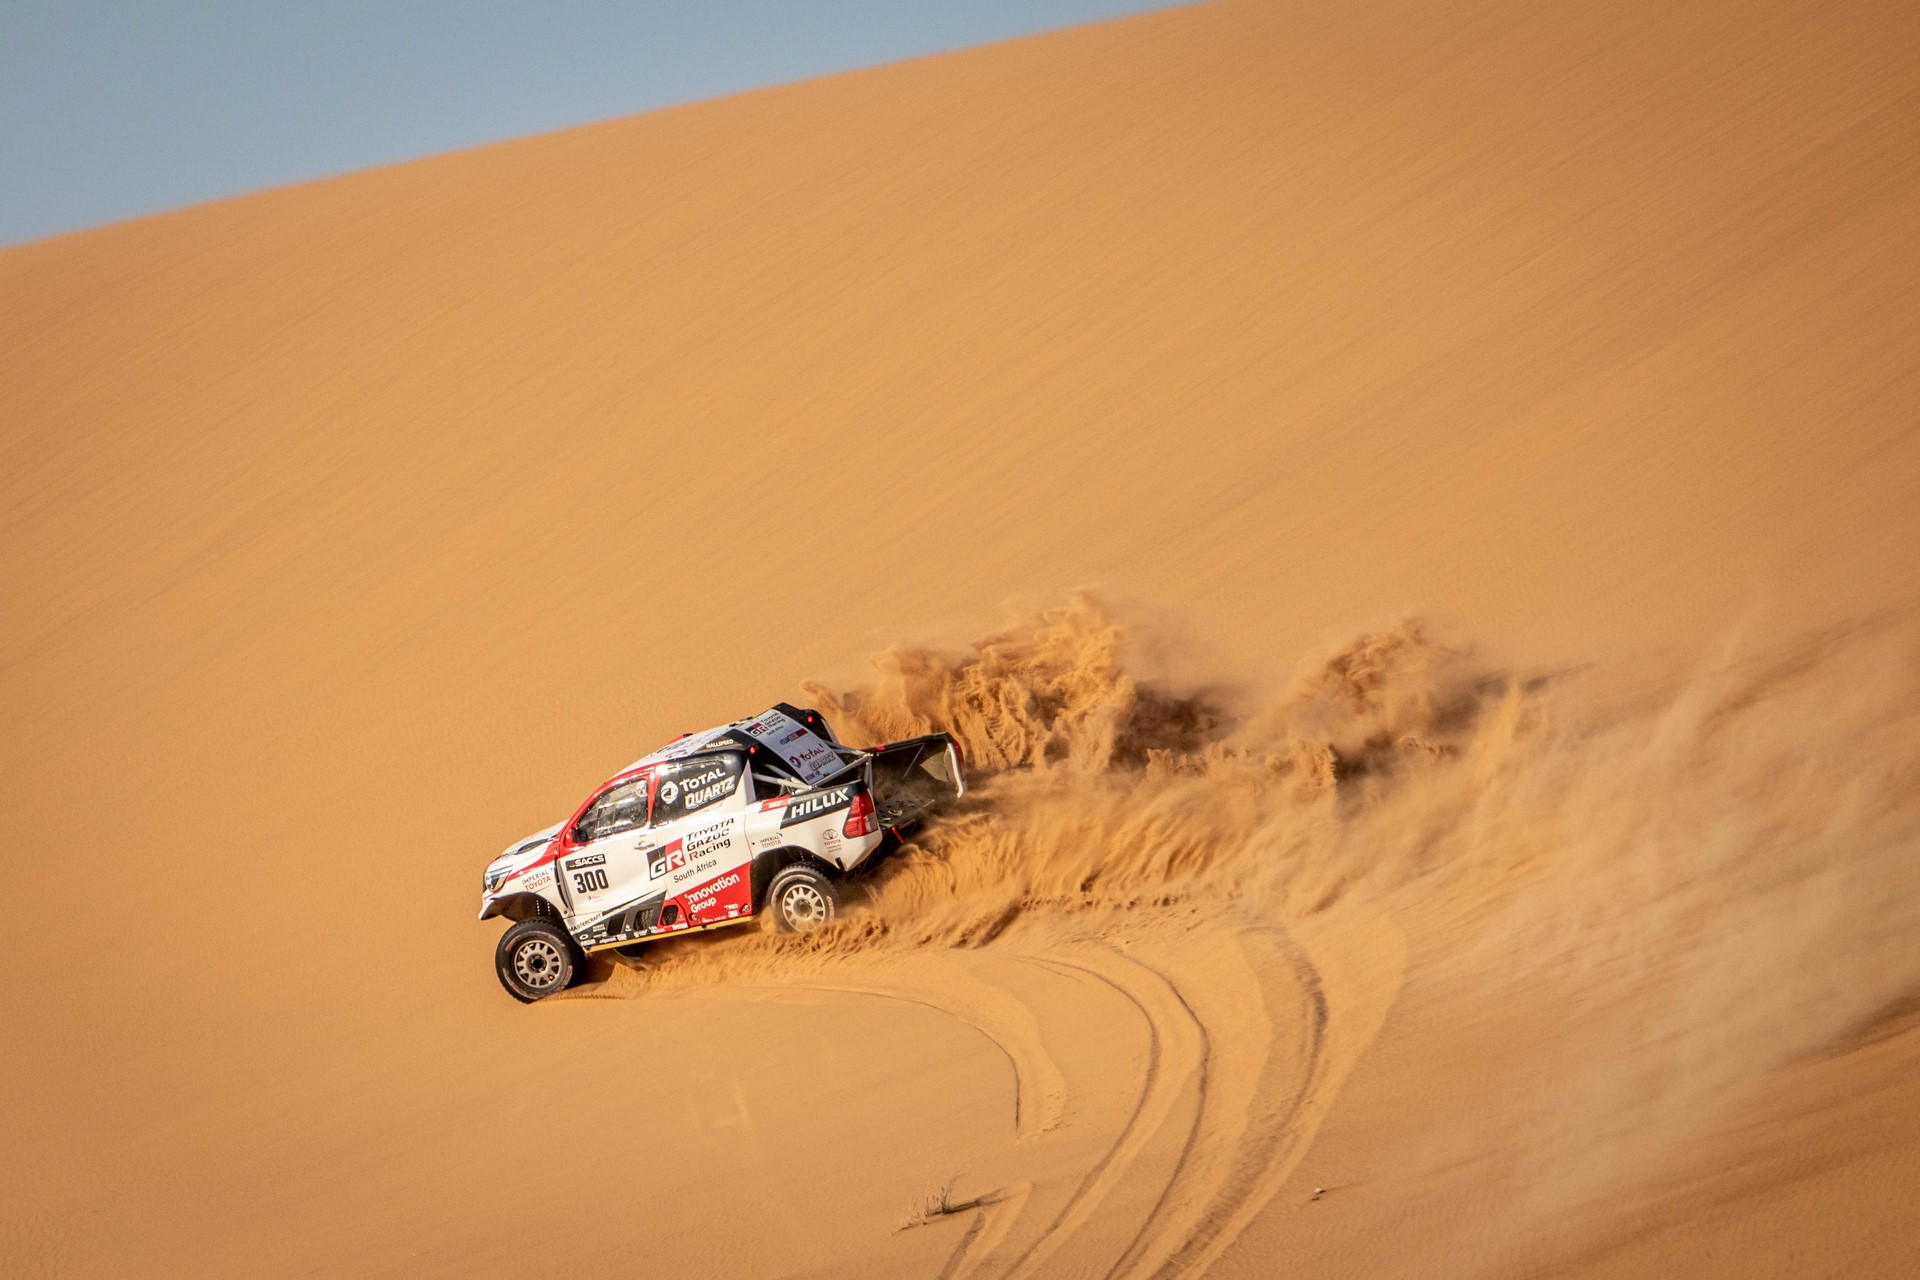 Fernando-Alonso-Training-Namibian-desert-8